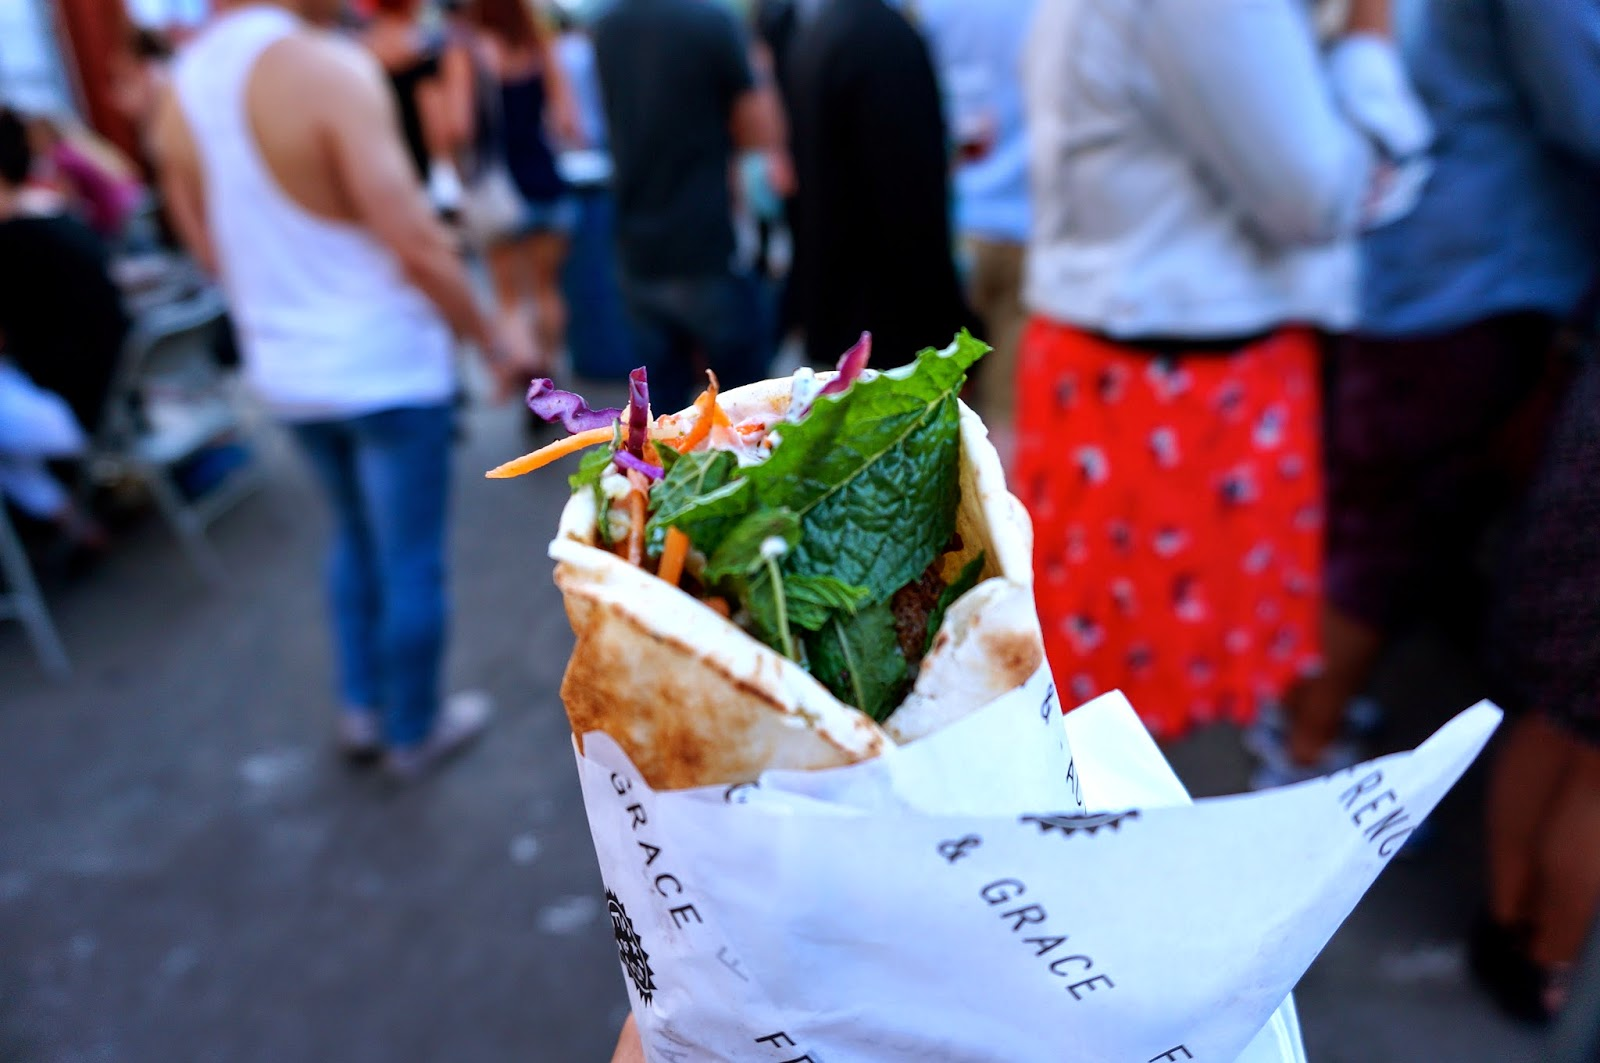 Dalston Yard Street Feast, London